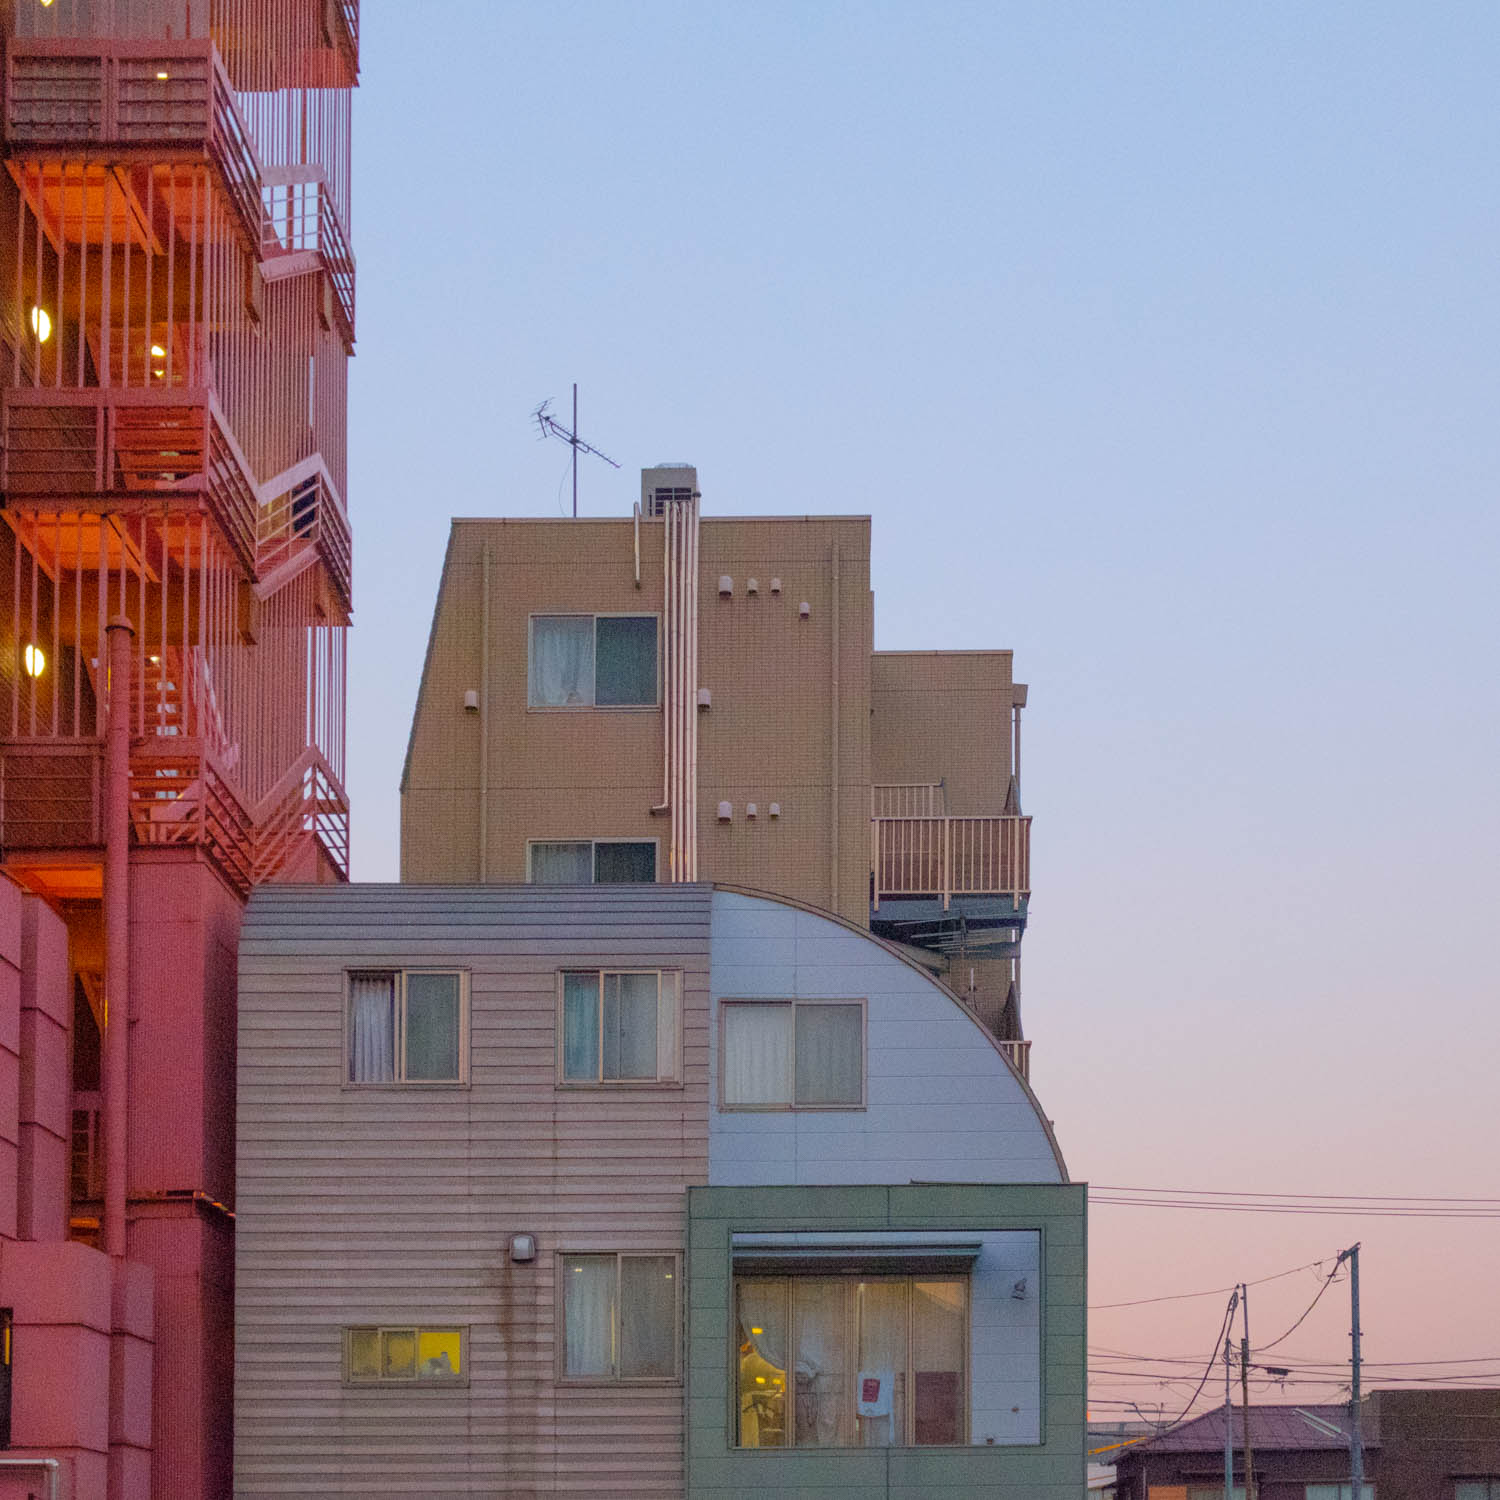 Dusk / The pastel shades of Tokyo city's architecture.